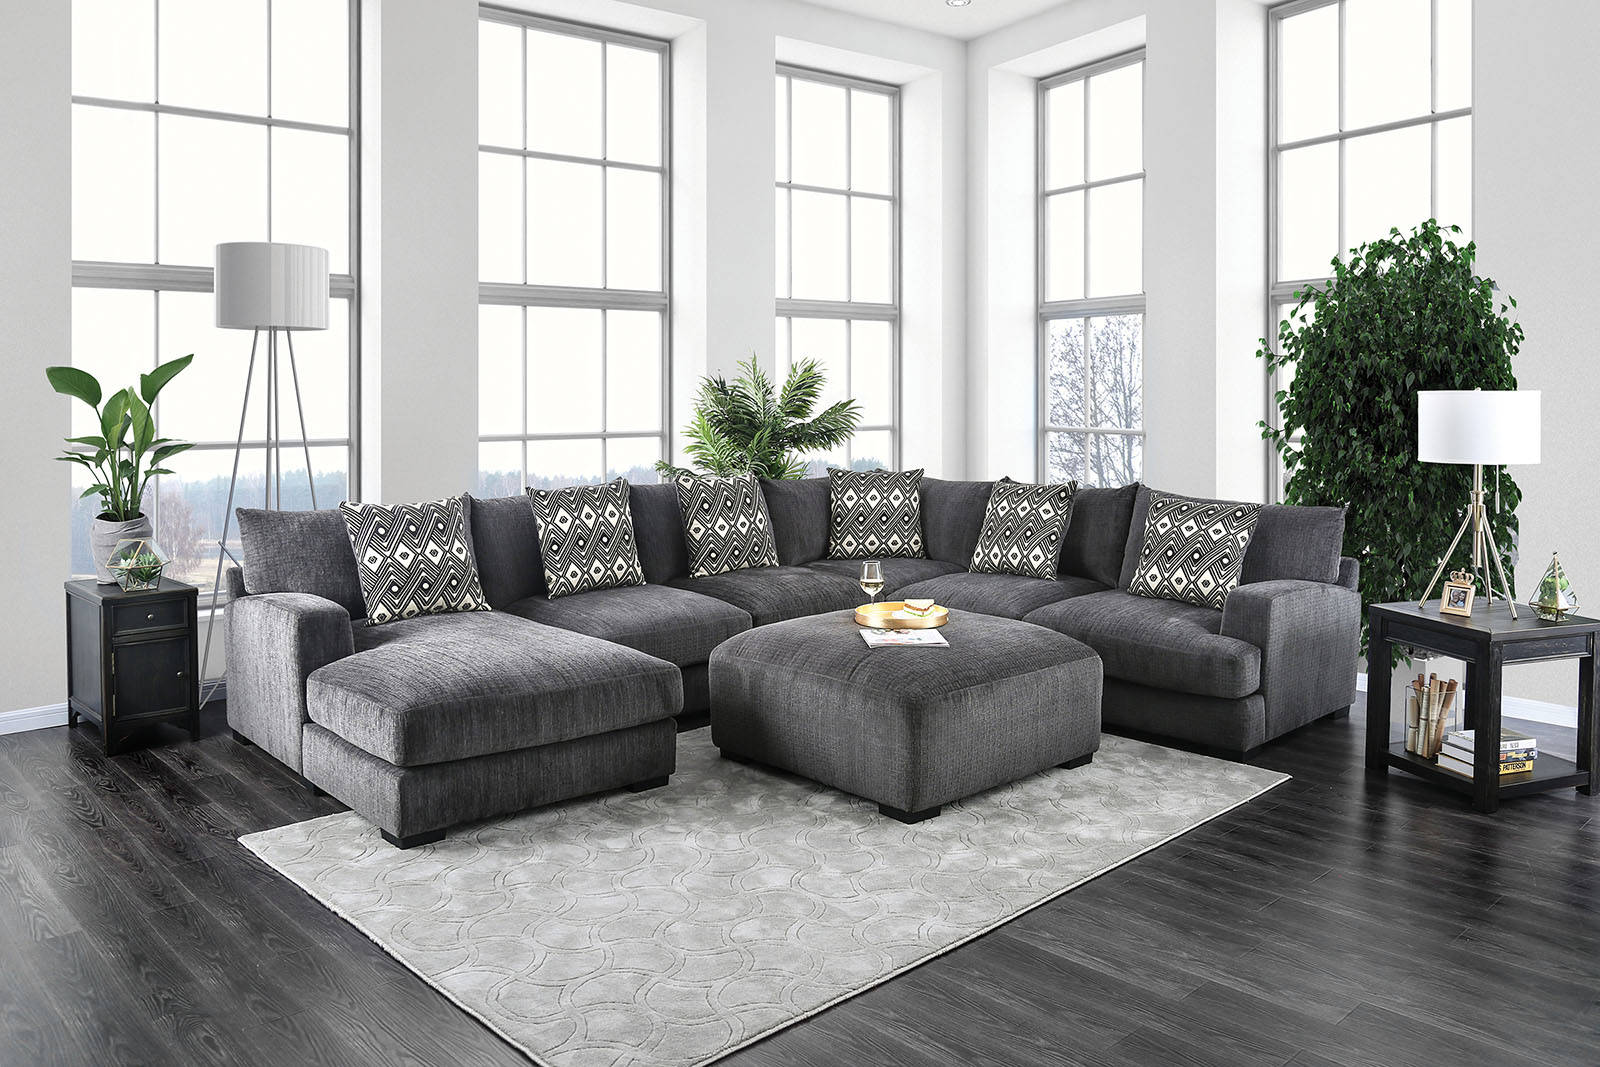 Furniture Of America Kaylee Gray Sectional With Ottoman The Classy